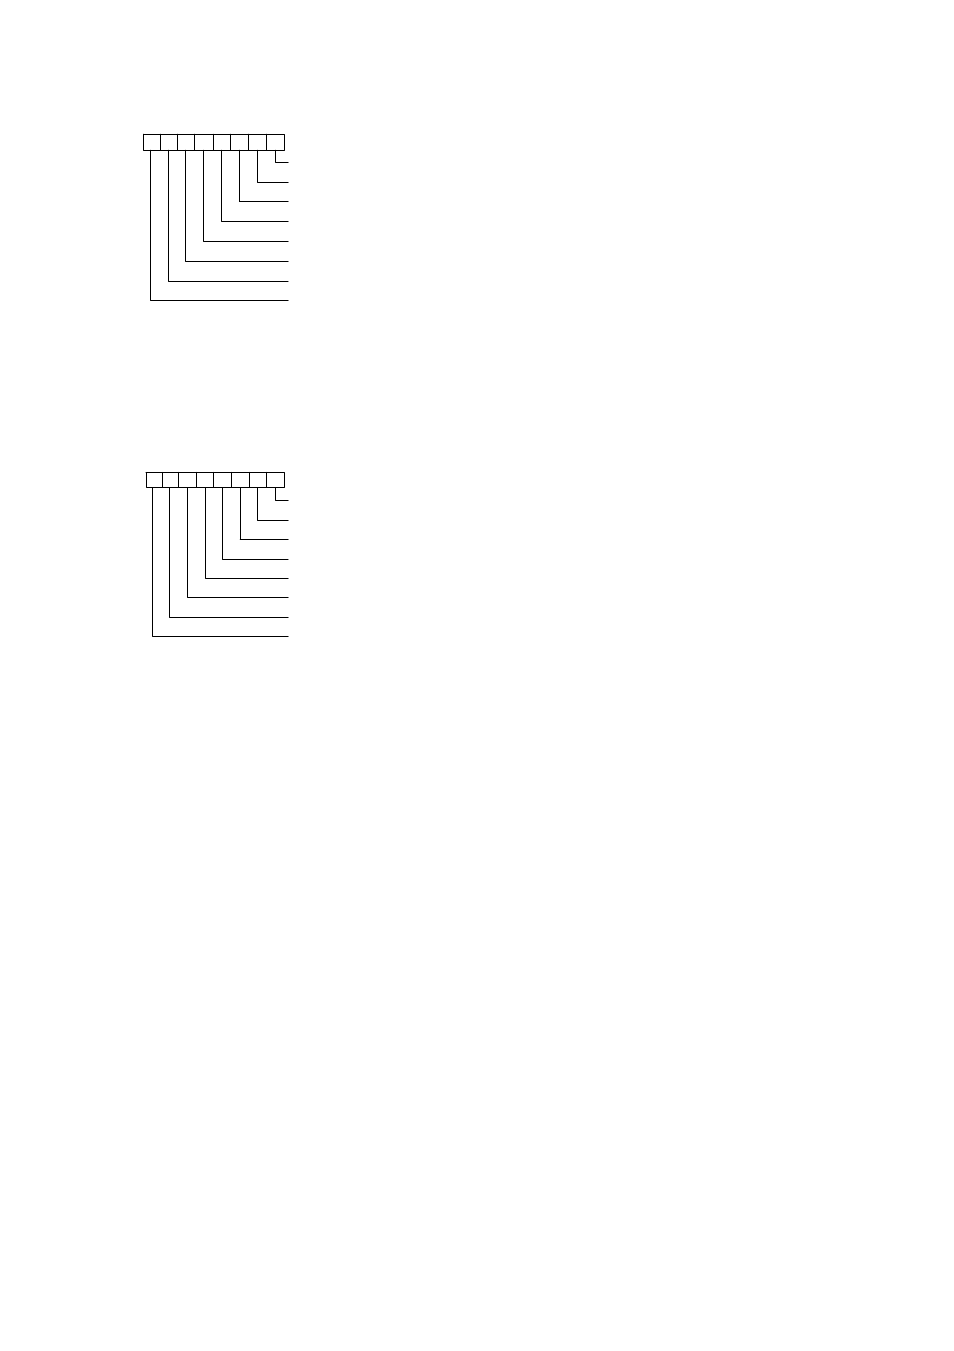 Seca 460 RS232 User Manual | Page 2 / 2